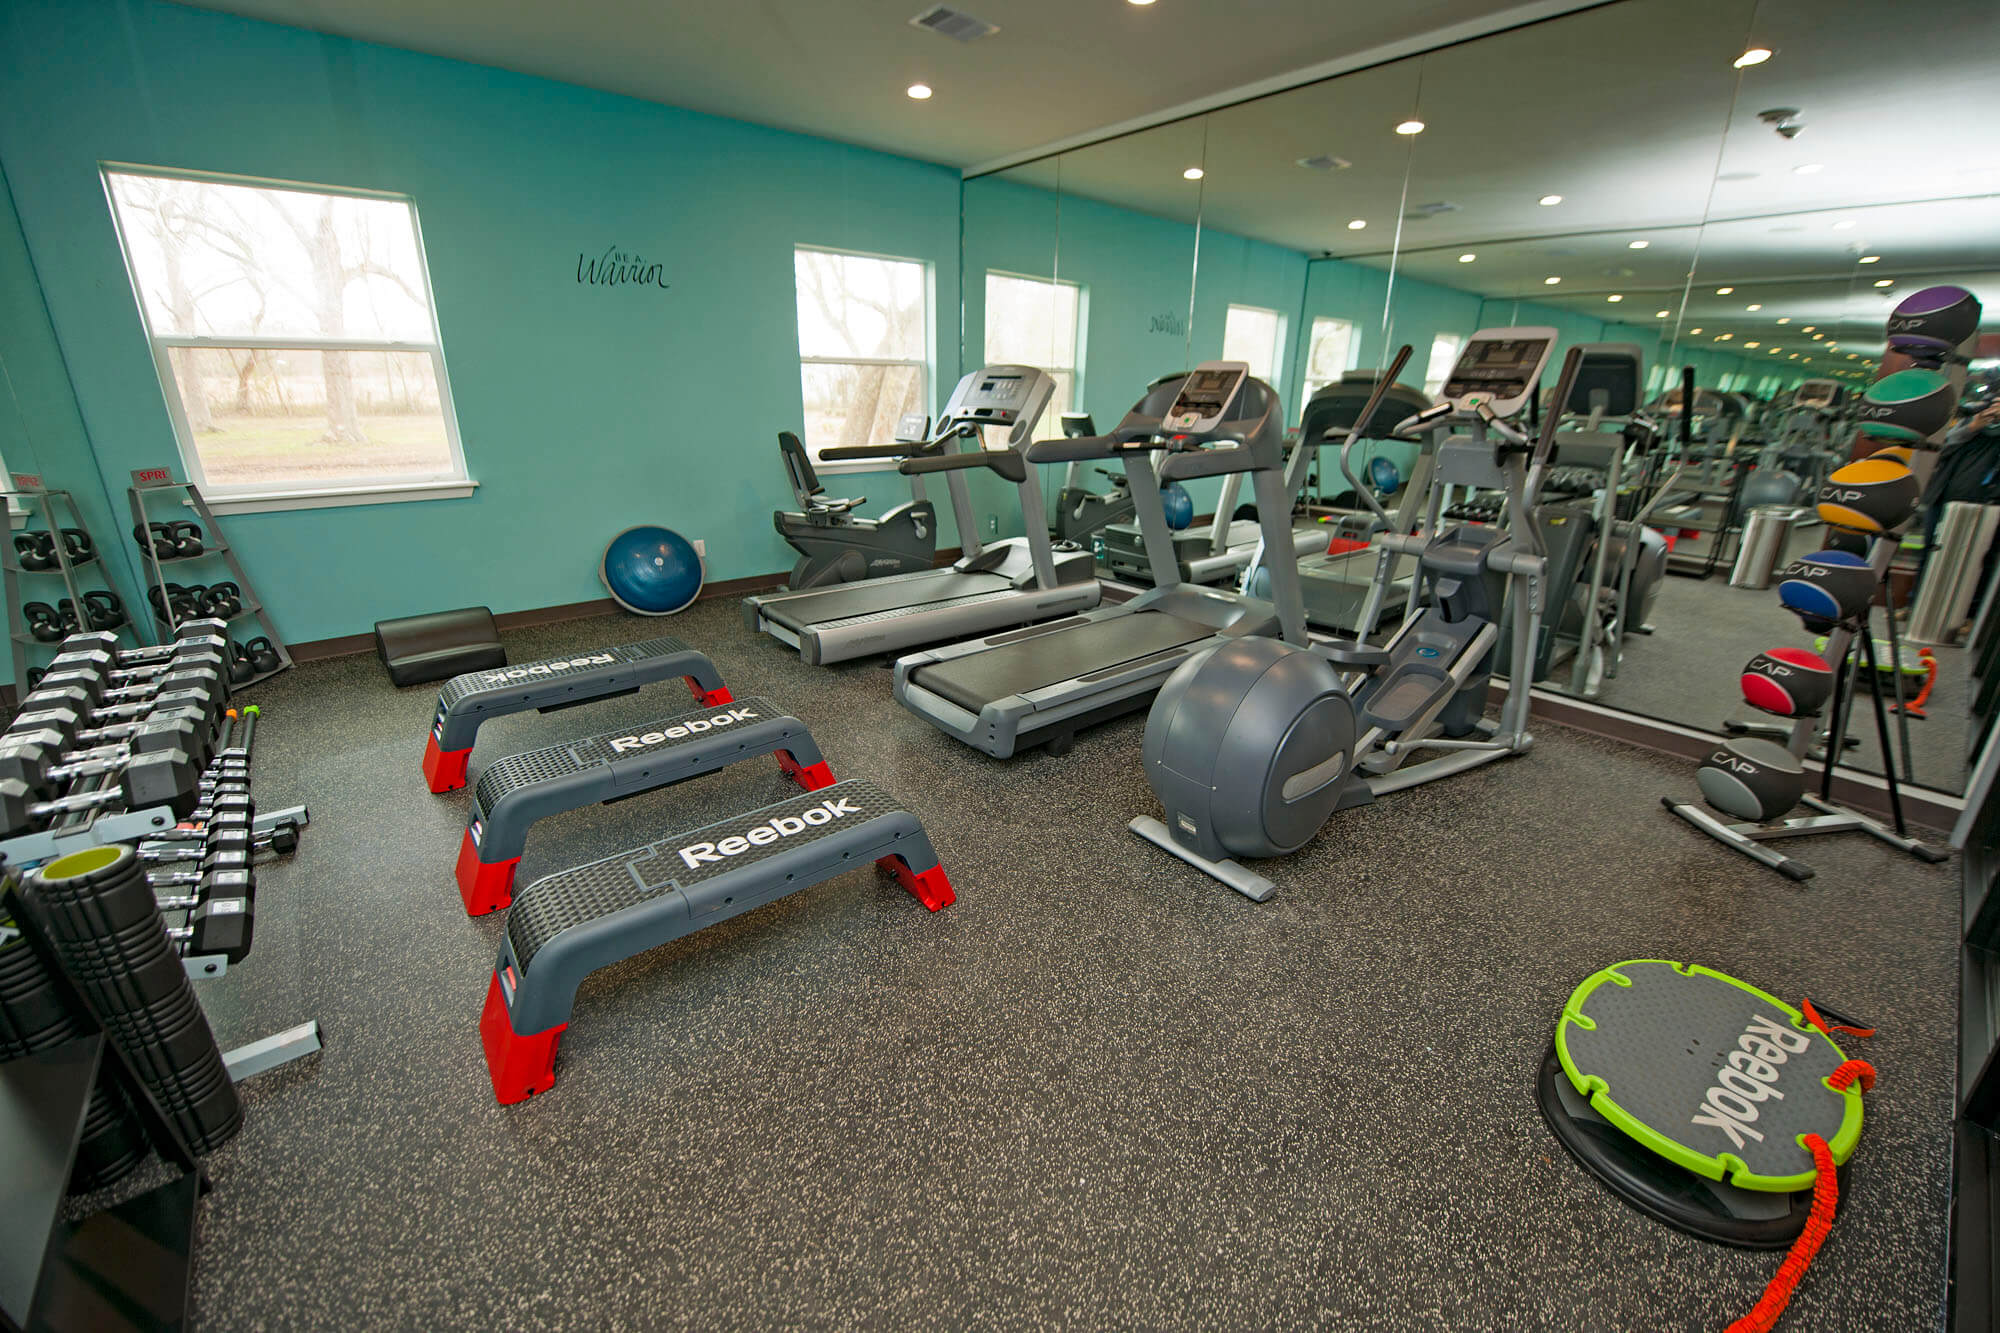 Serenity Light Recovery fitness room